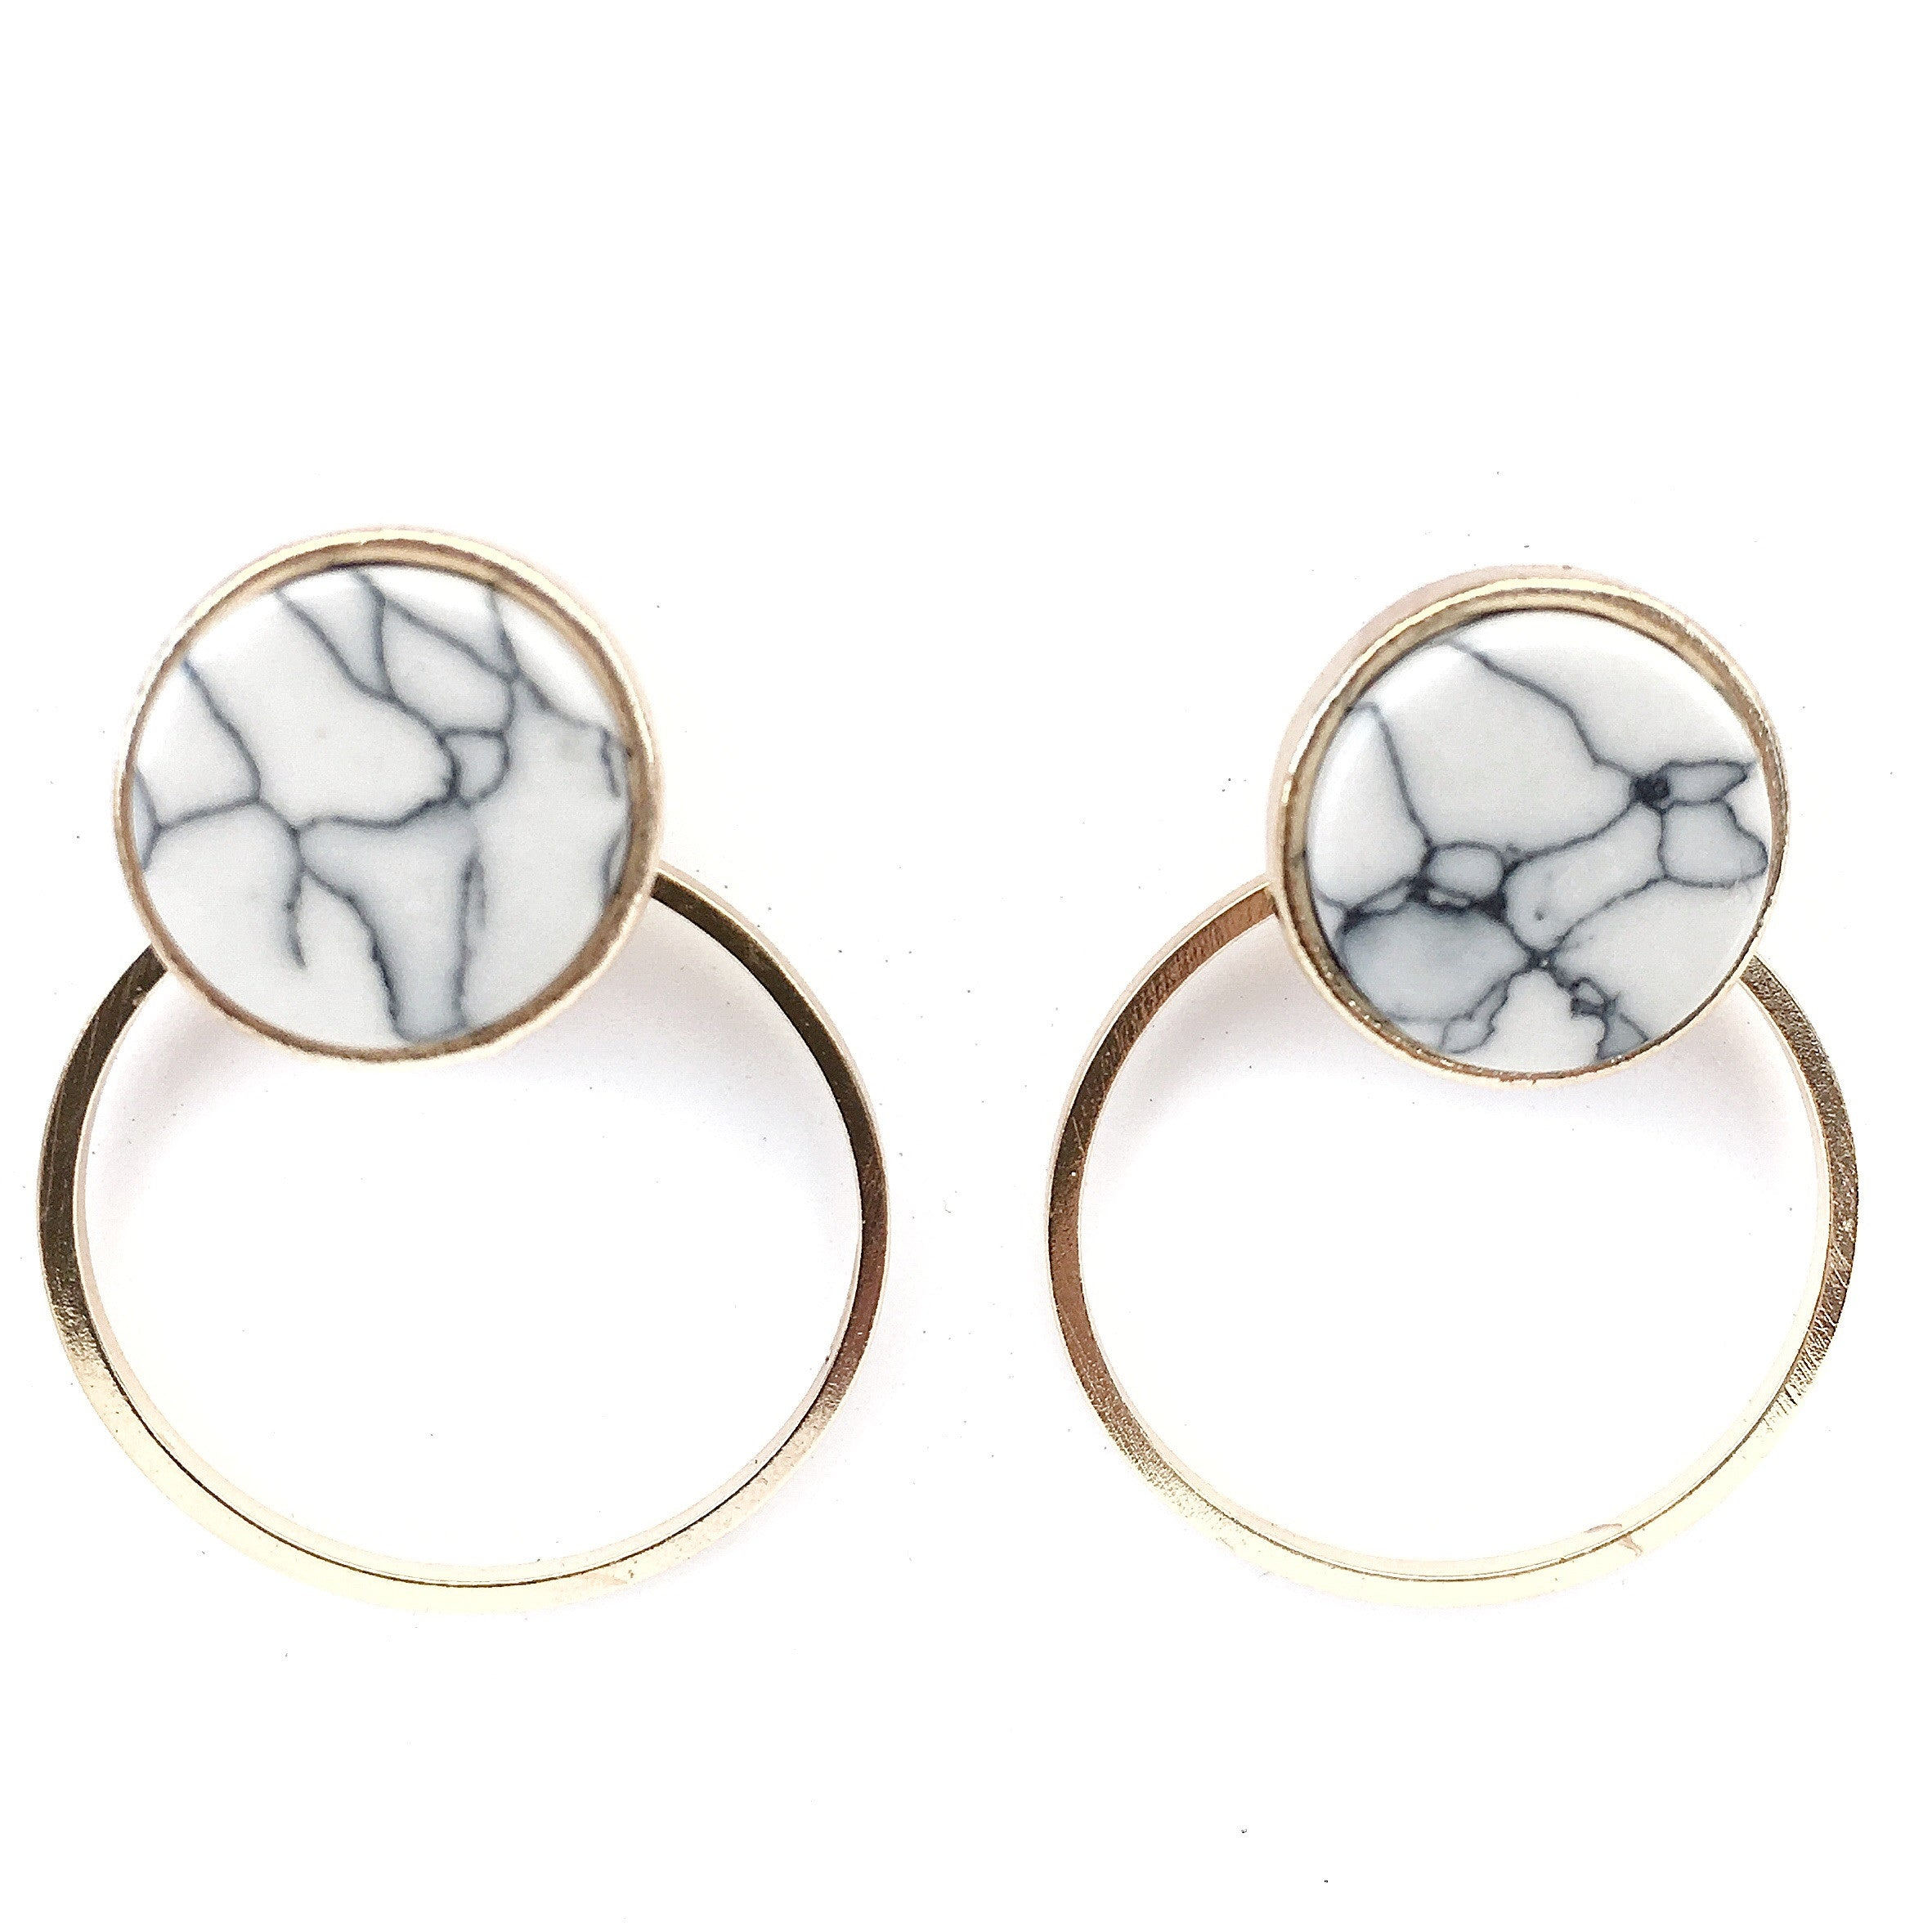 Reika Marble Earrings